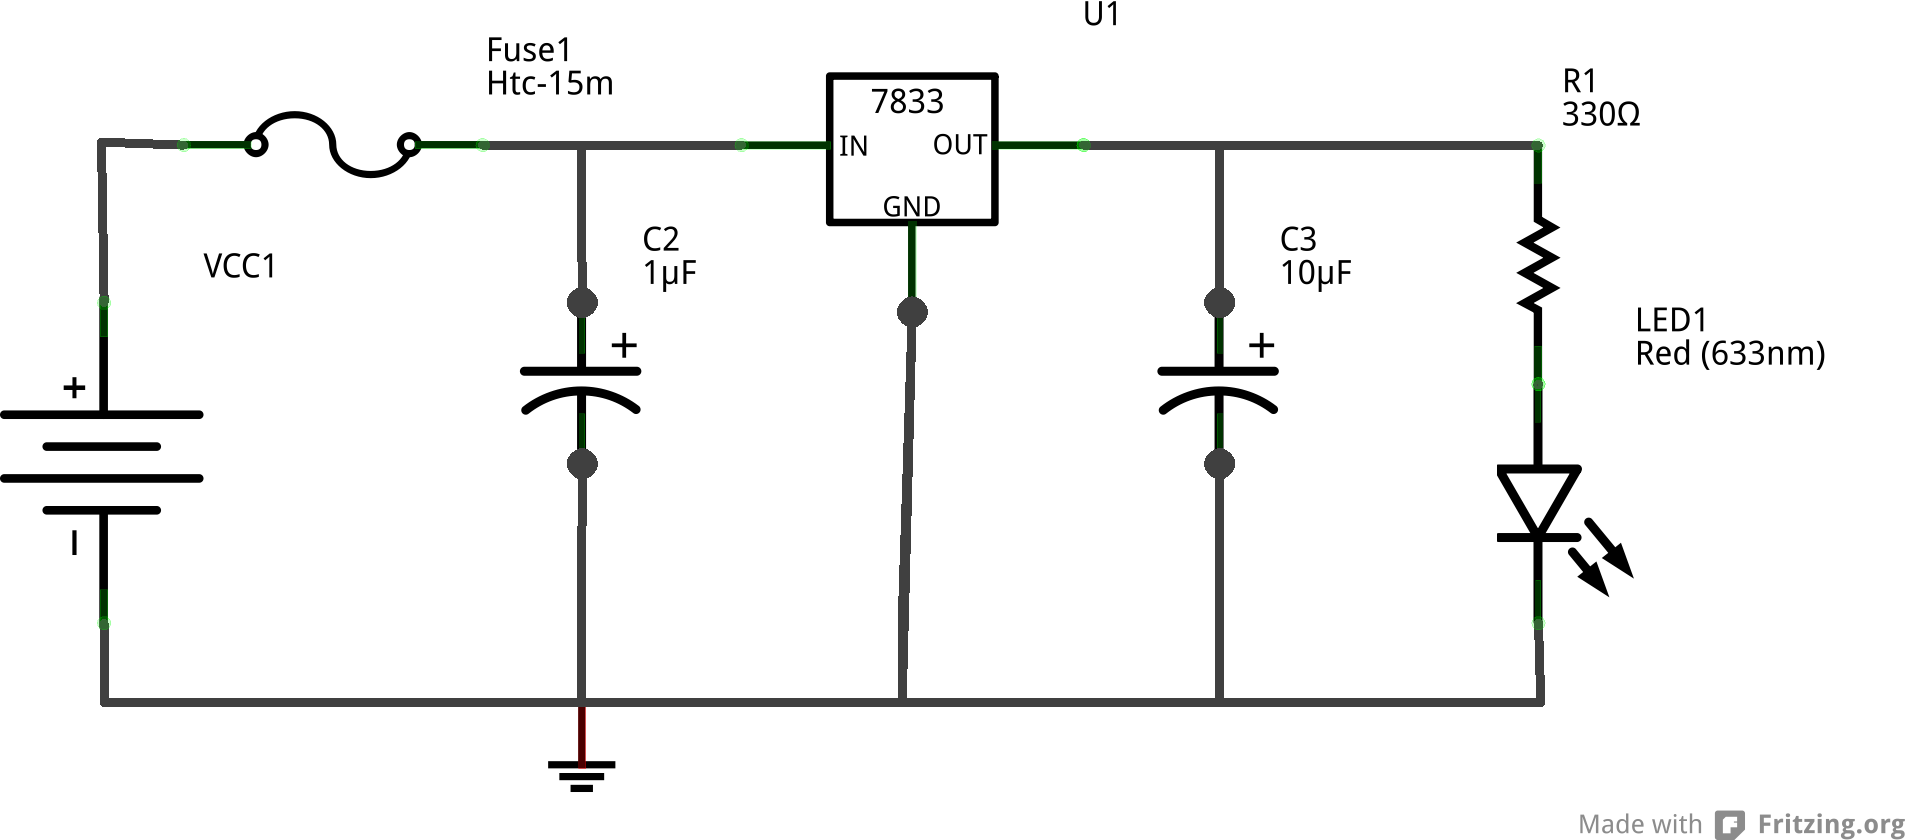 Csci 255 Using A Breadboard Our Voltage Regulator Schematic Task 2 The 0s And 1s